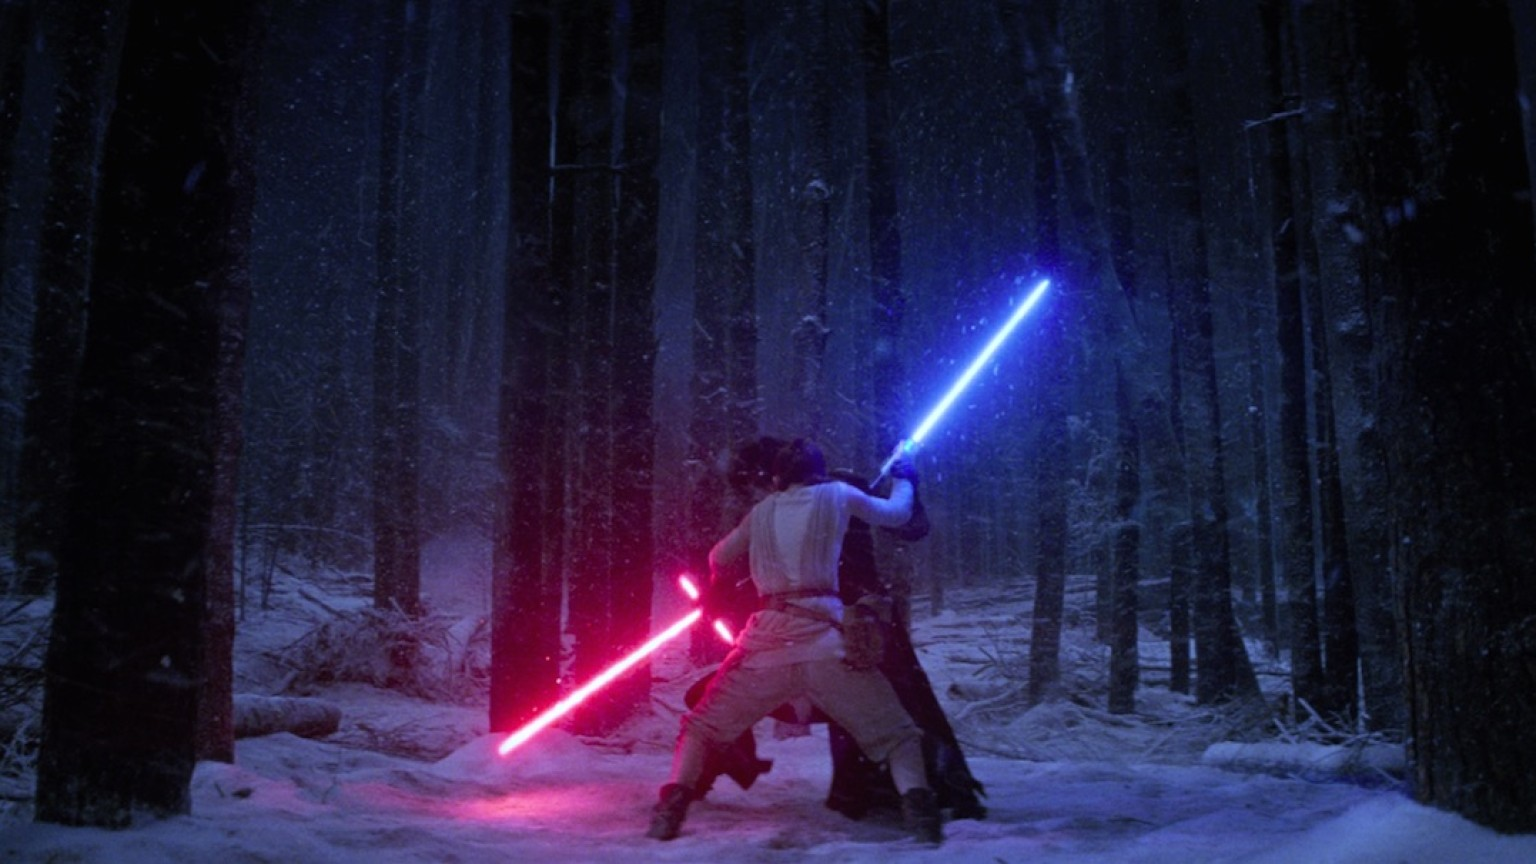 The Force Awakens - Rey and Kylo Ren